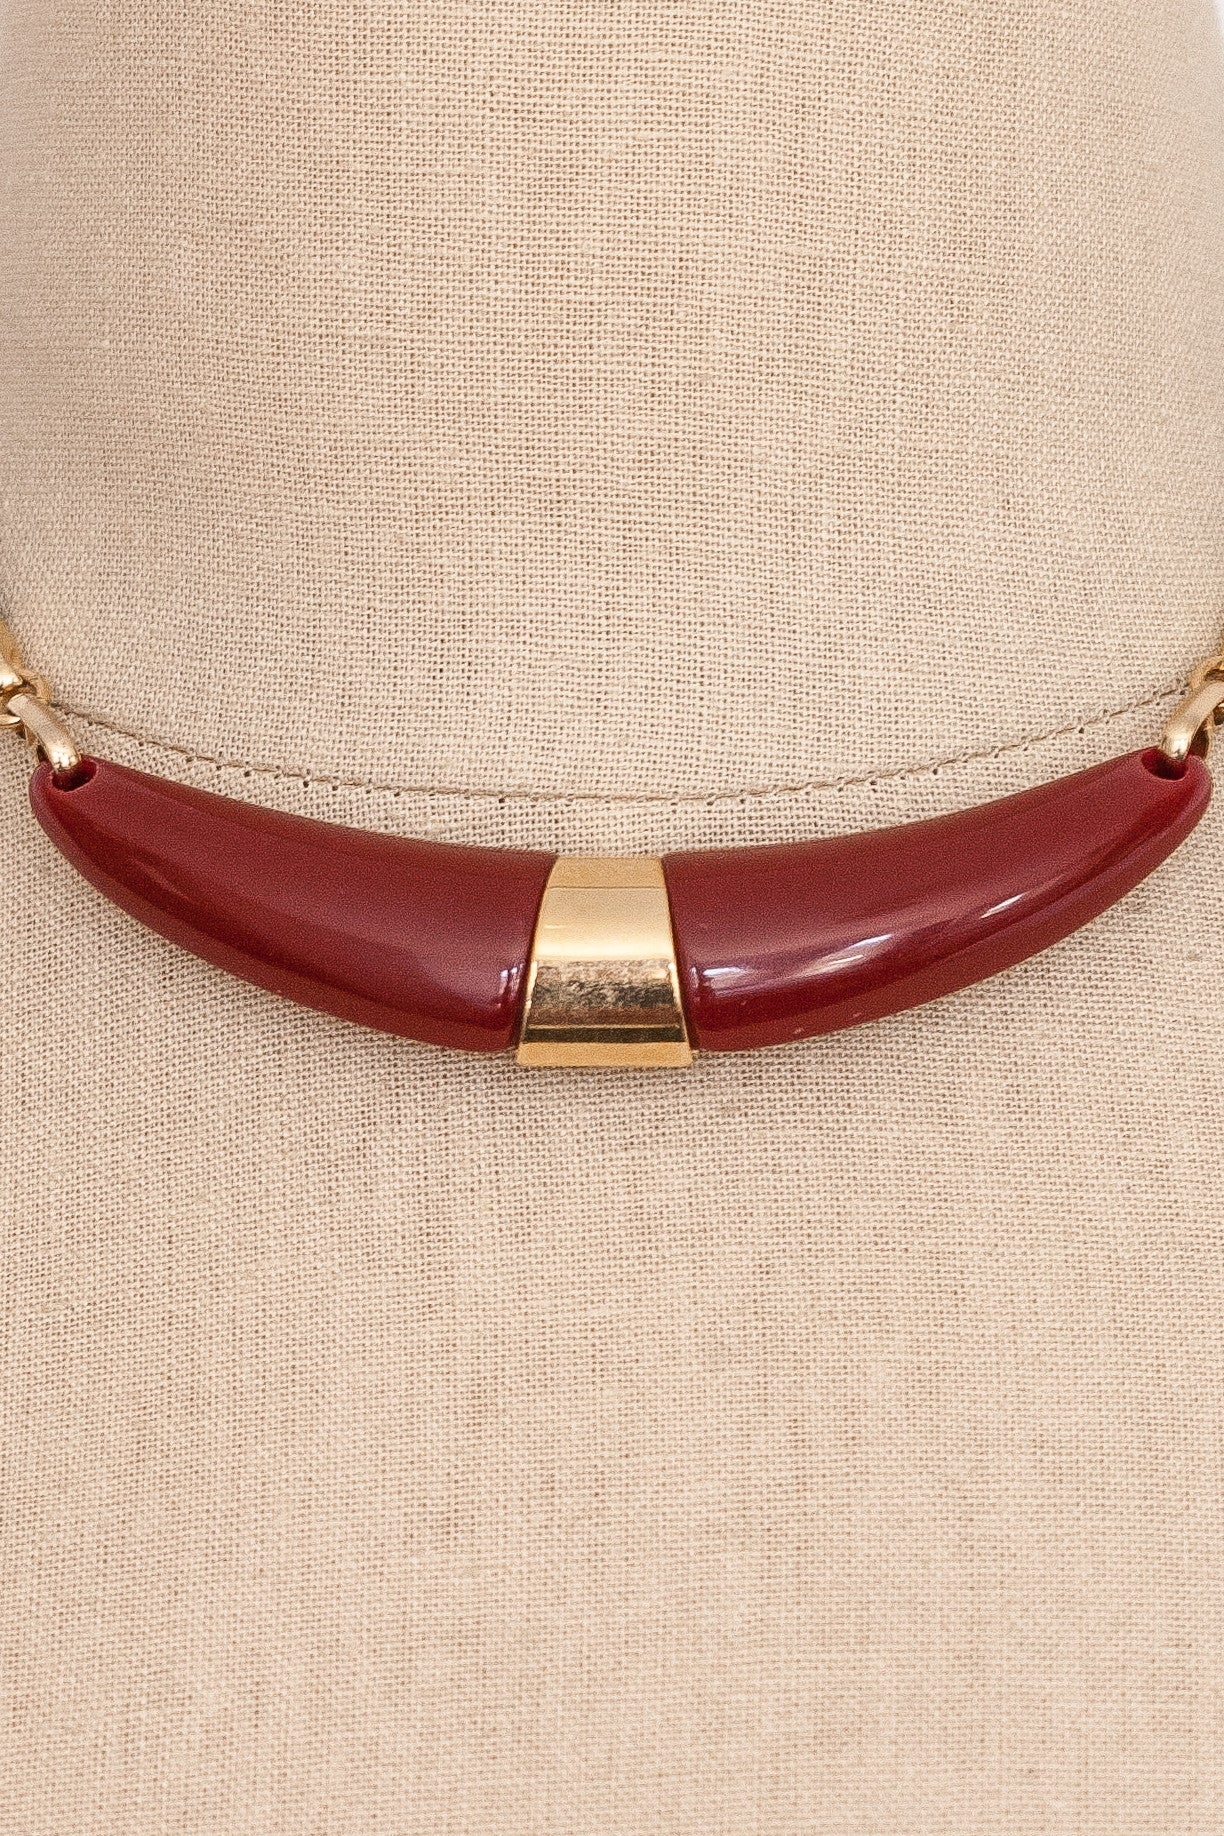 70's__Sarah Coventry__Bar Necklace